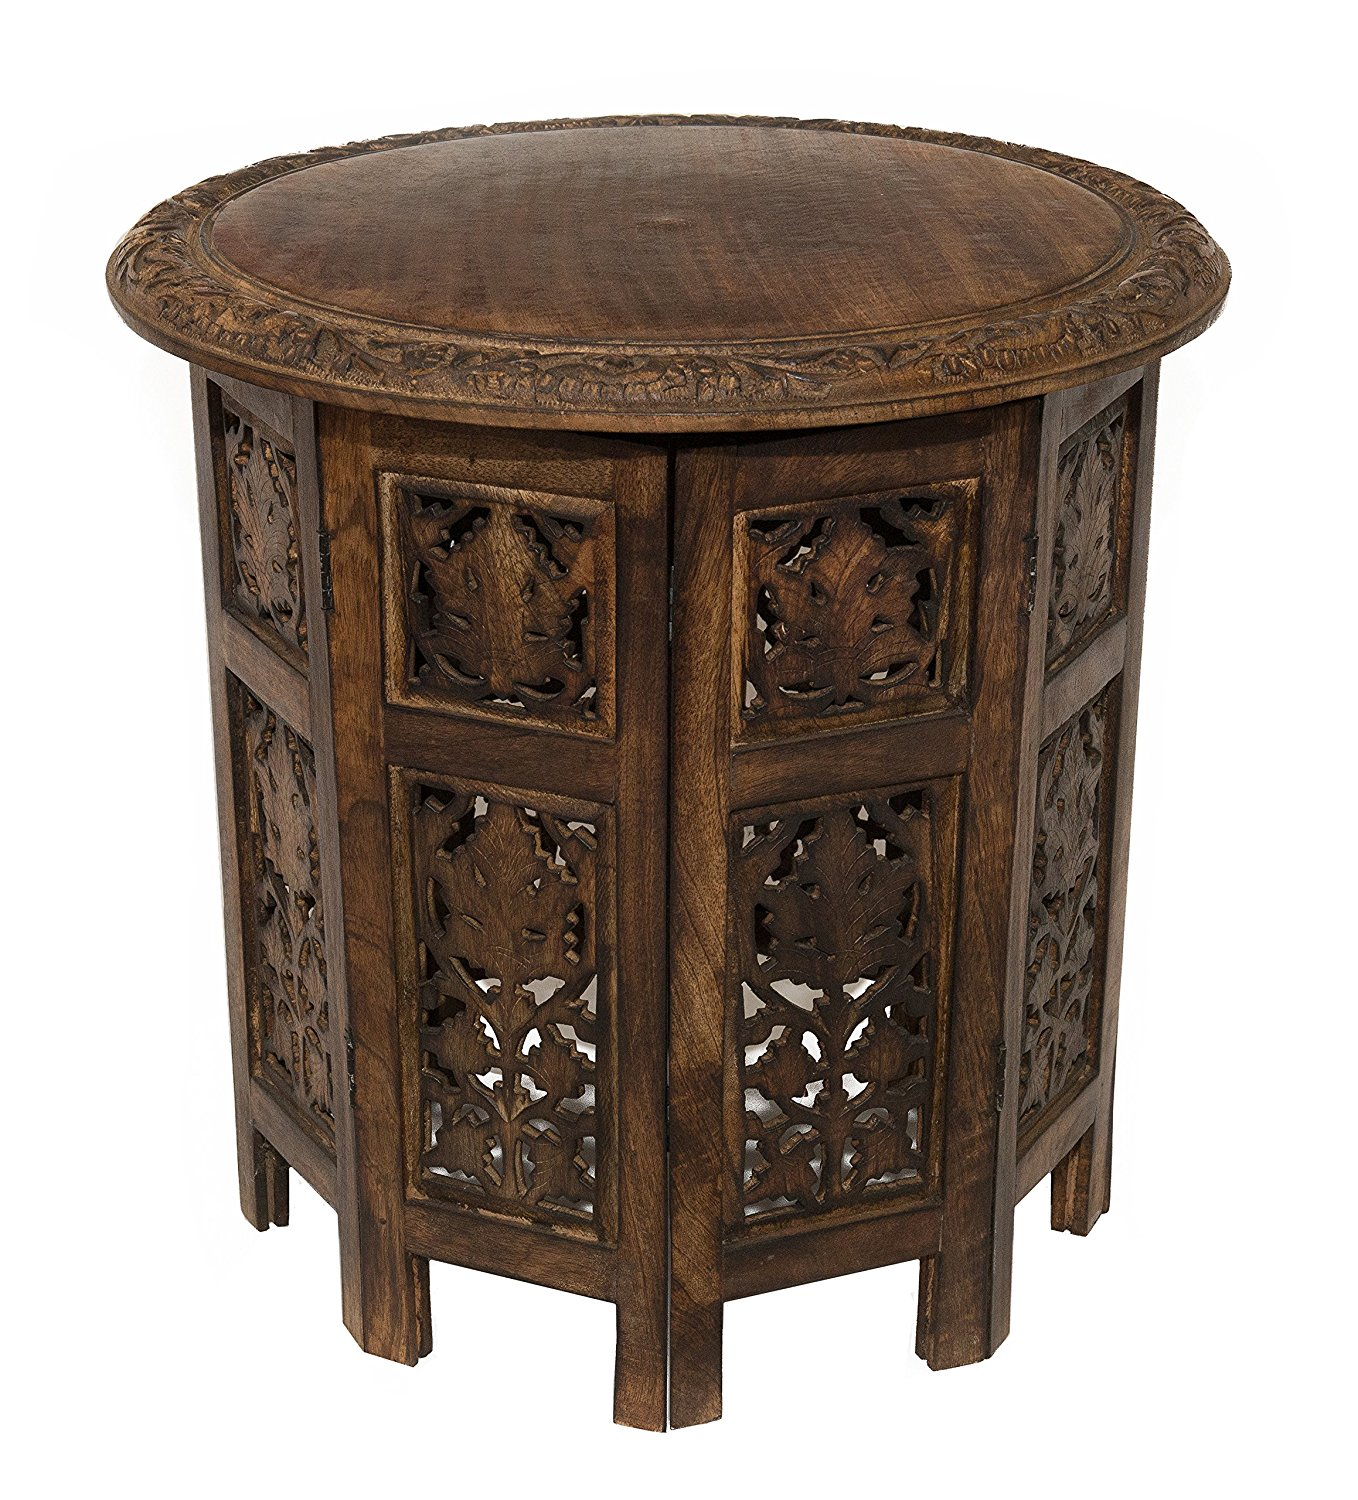 lovely small accent table for ornate espresso round wooden outdoor side tall black console bedside ideas hardwood threshold mosaic chairs pub set target patio room decoration